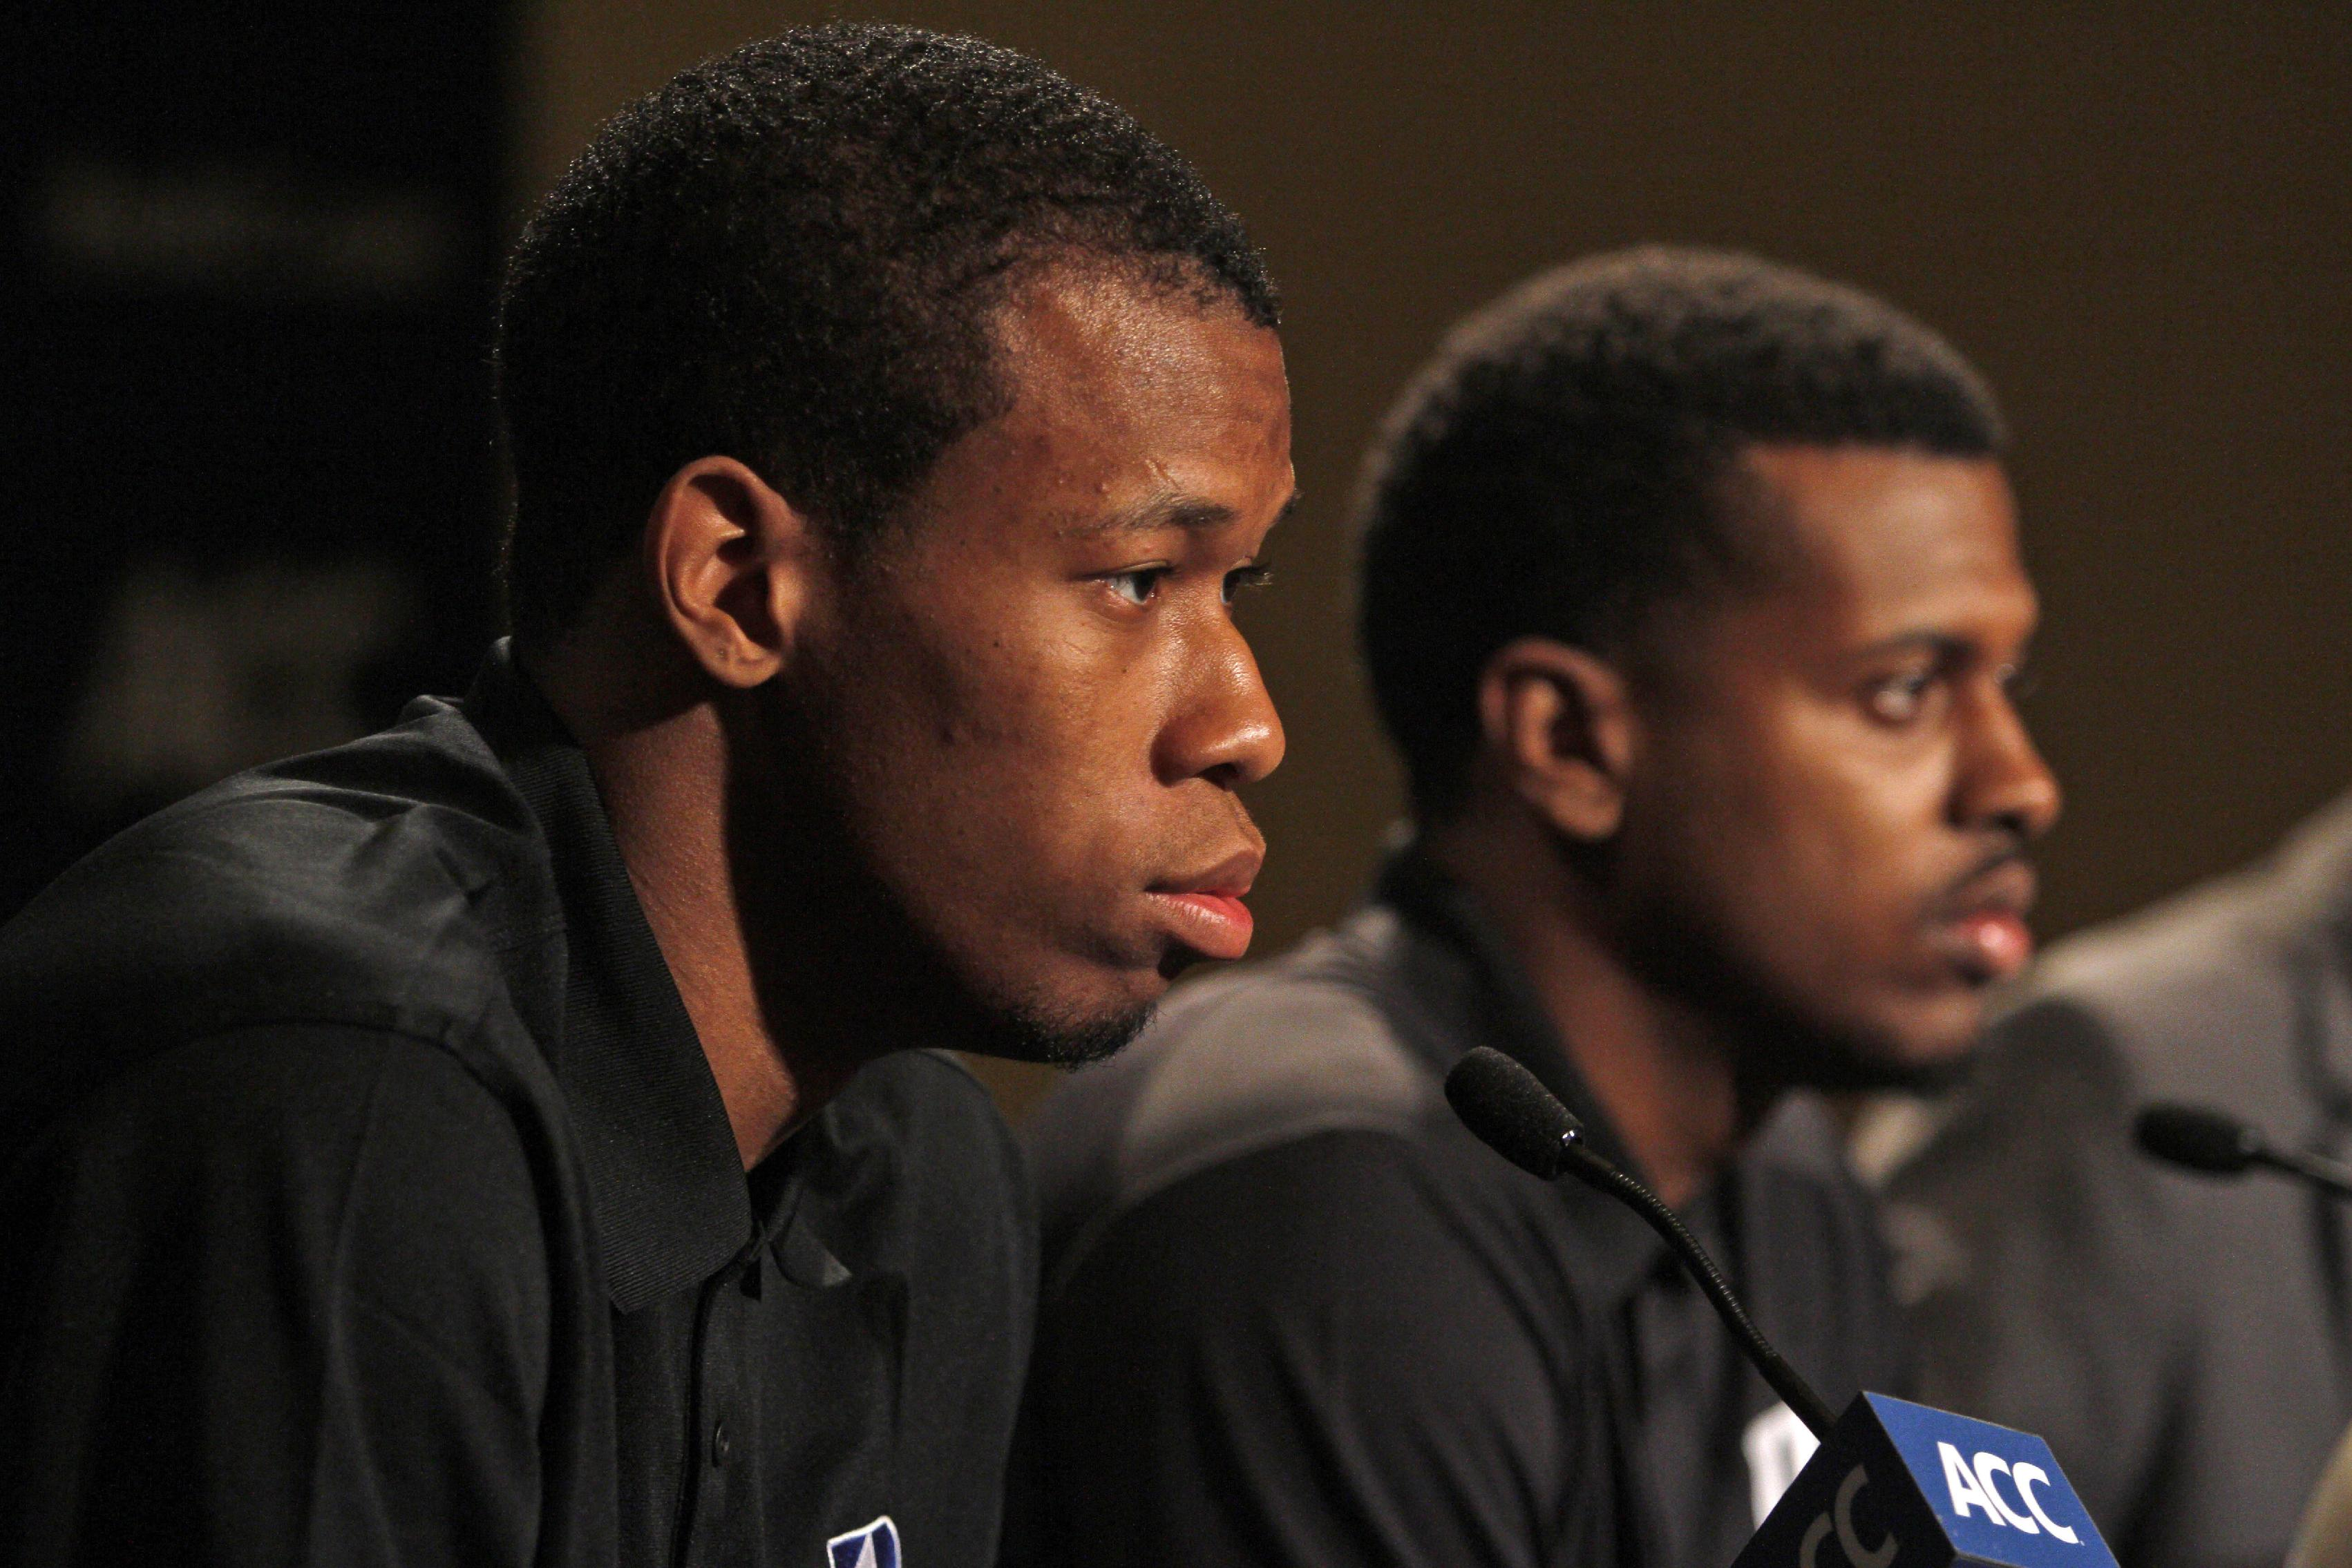 Duke basketball players Rodney Hood, left, and Tyler Thornton listen to questions at a press conference during the NCAA college Atlantic Coast Conference media day in Charlotte, N.C., Wednesday, Oct. 16, 2013